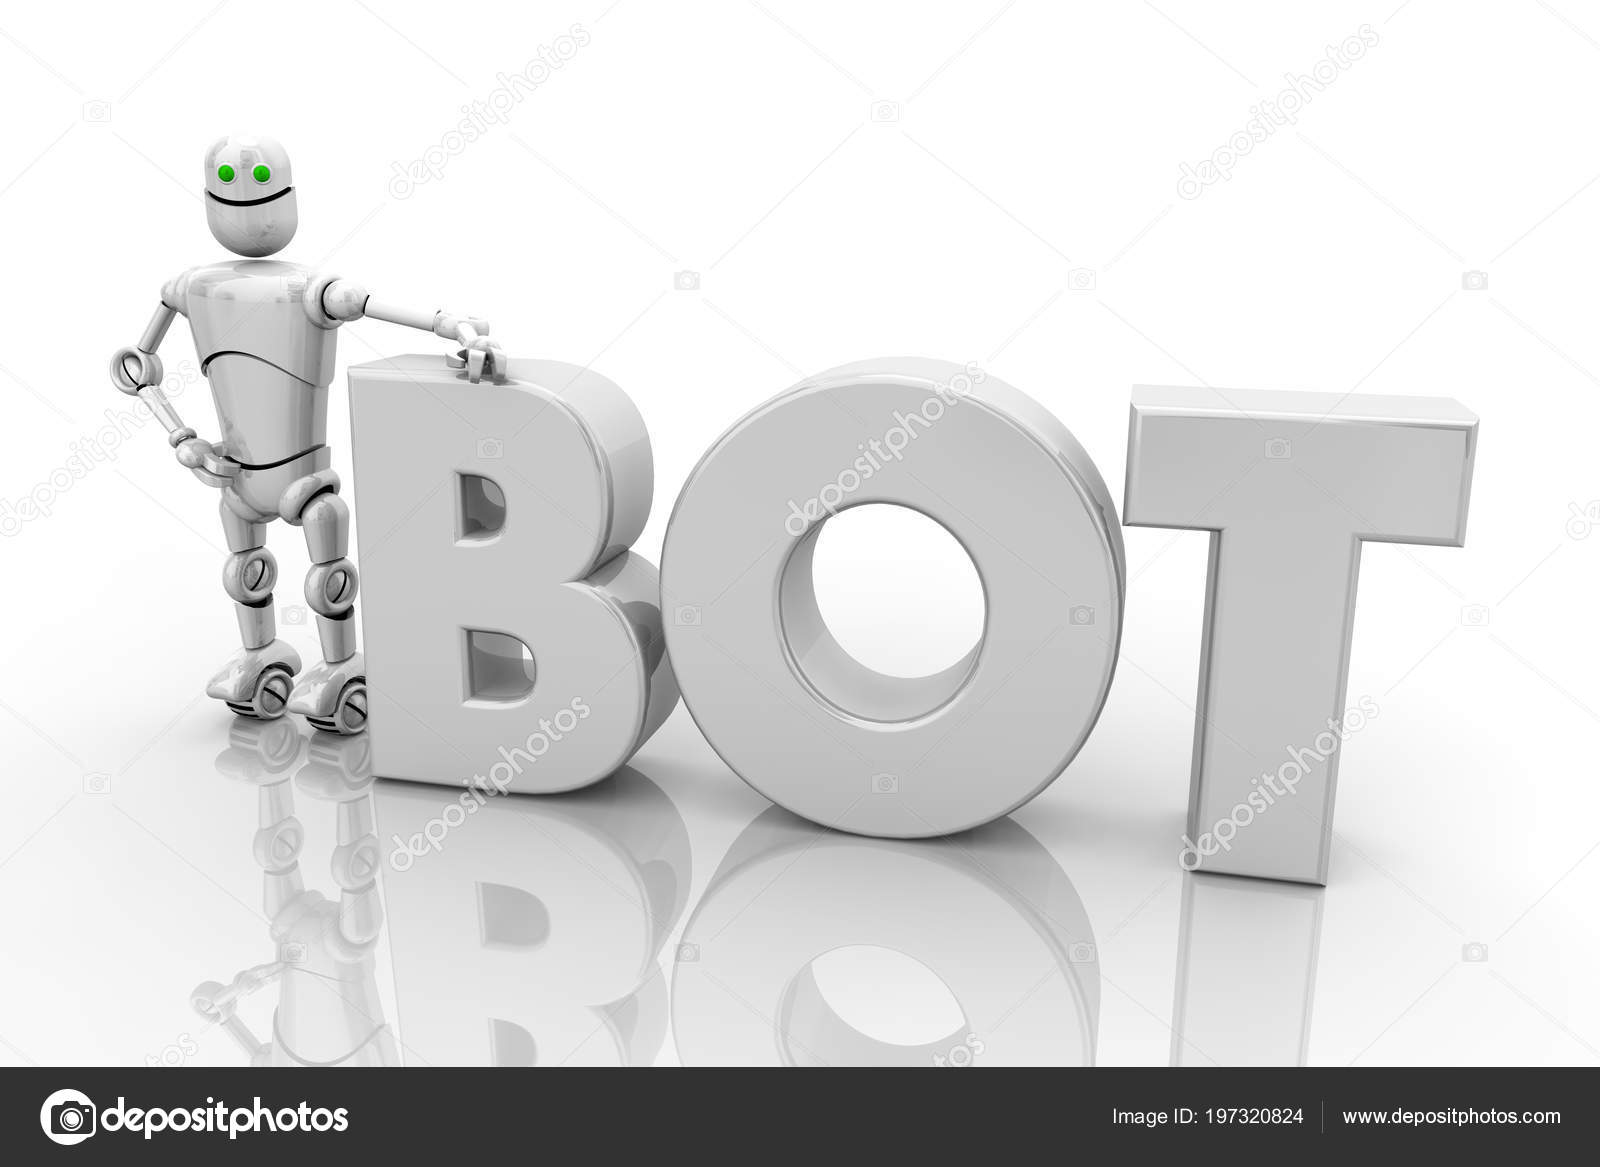 Bot Android Robotics Word Render Illustration Stock Photo